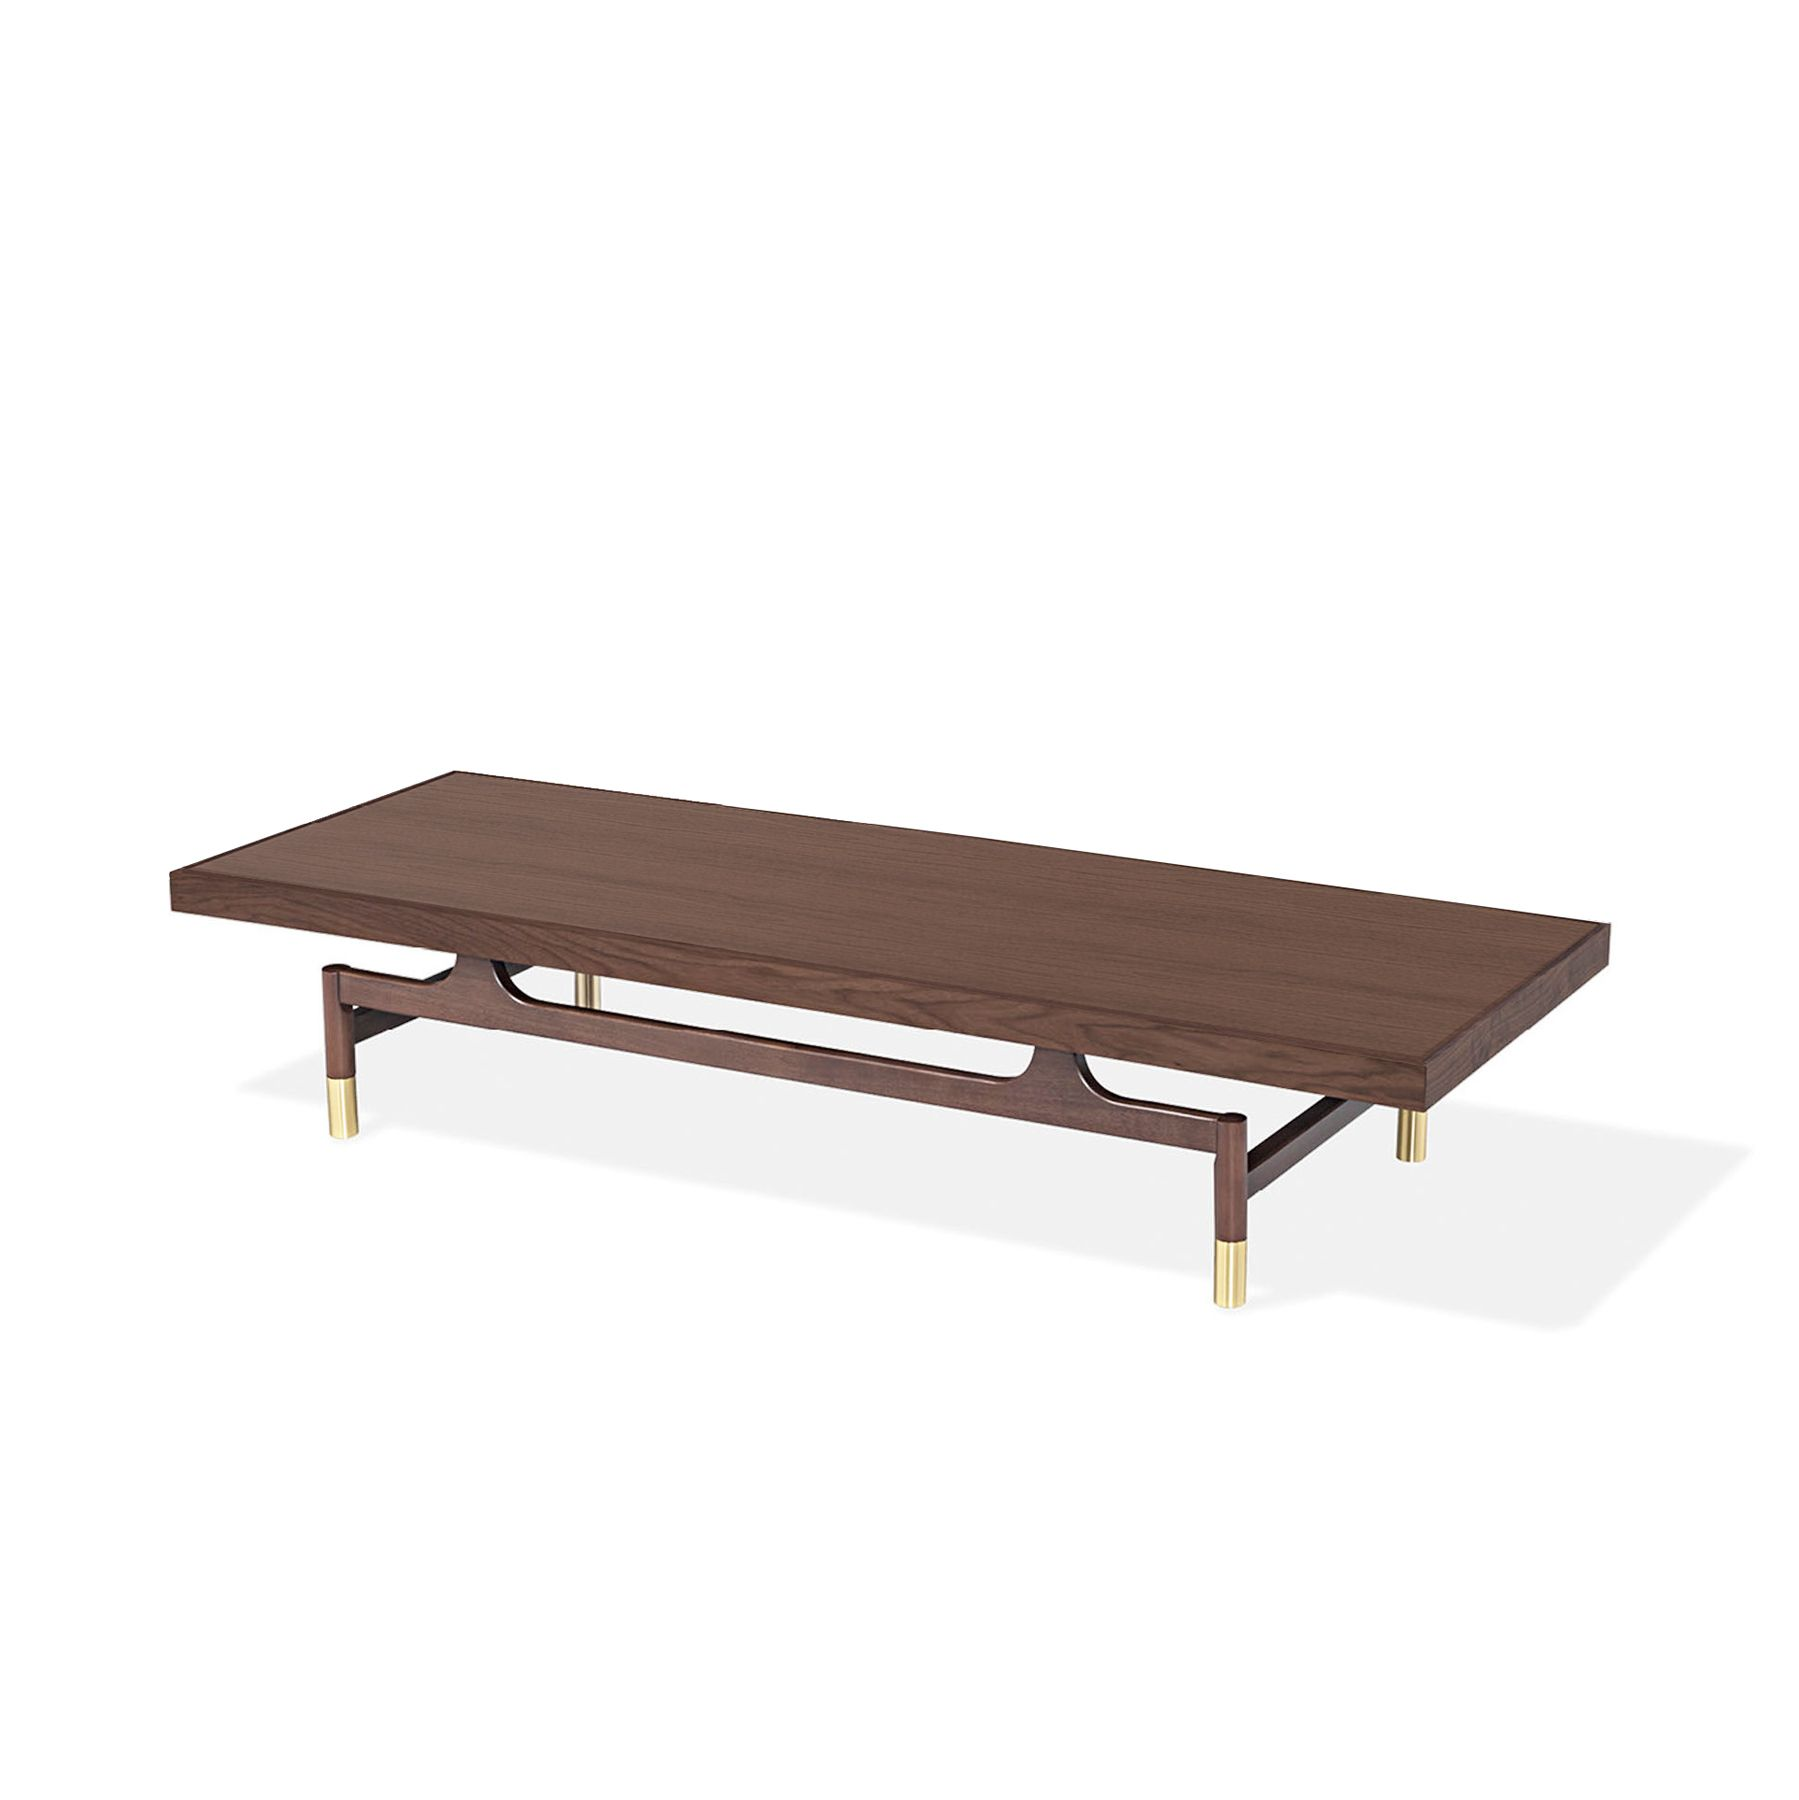 Gates Coffee Table - Walnut, Small